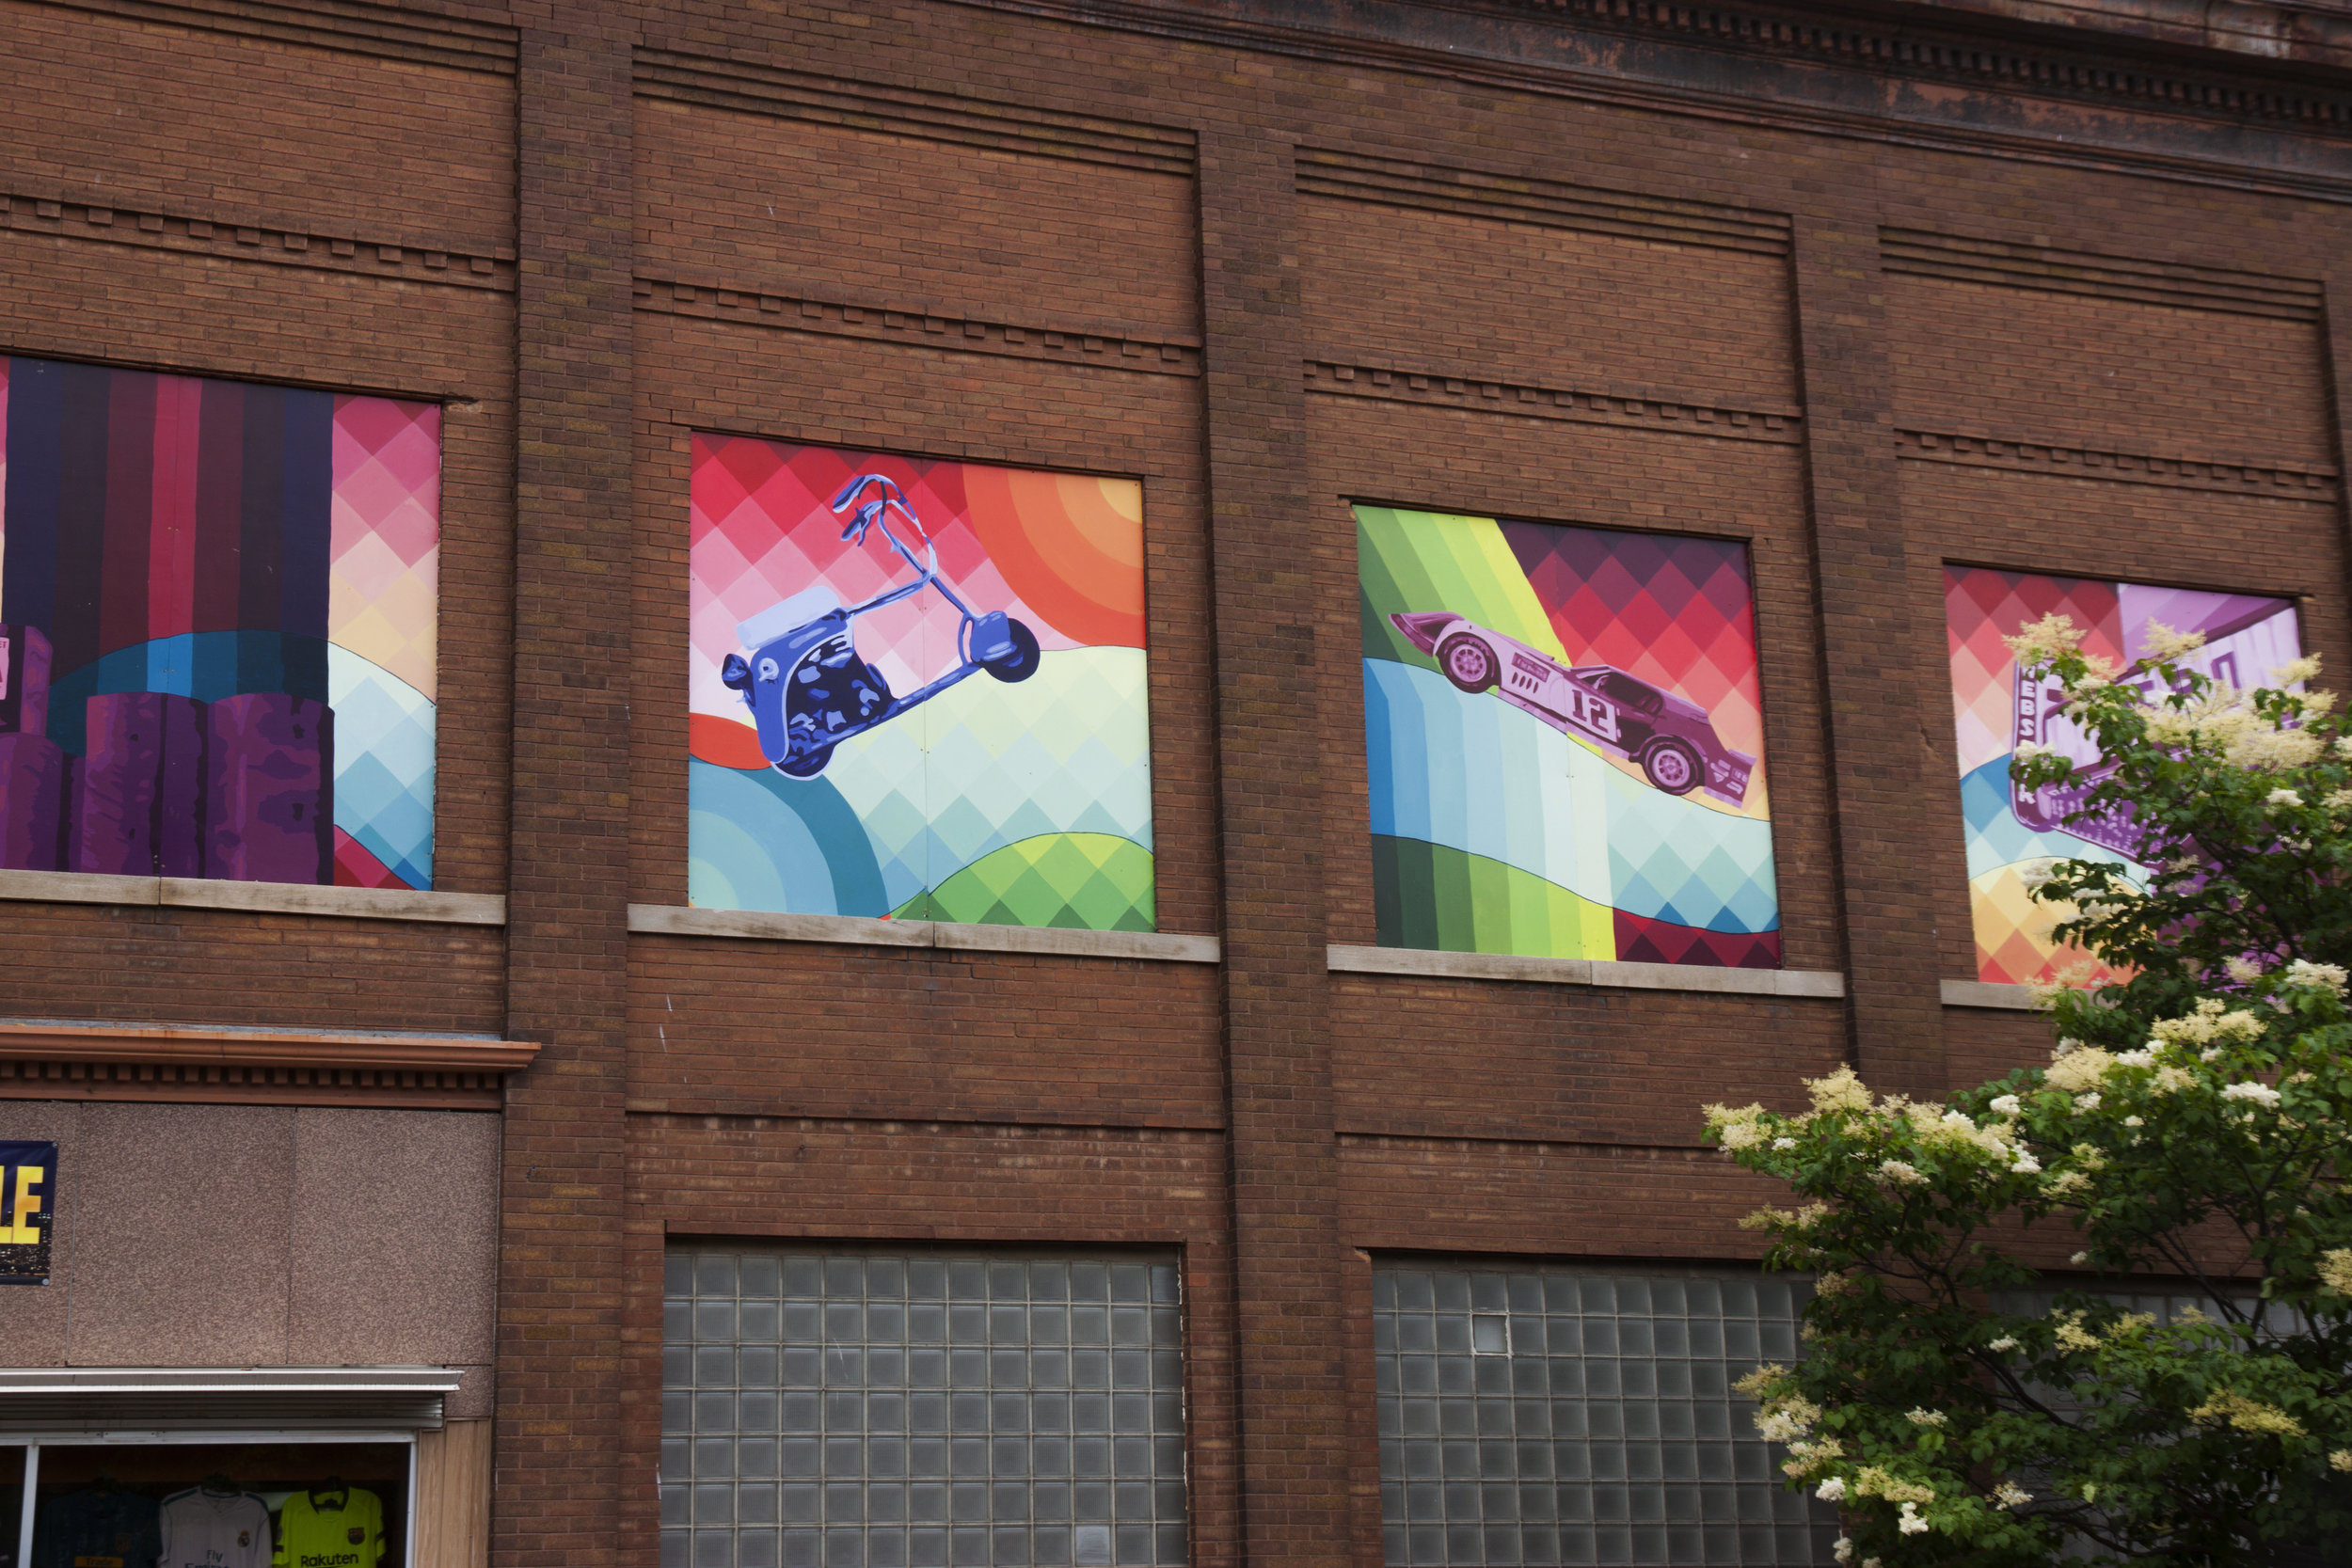 Webster City Town History Mural , Webster City, IA. 12 8'x8' panels.